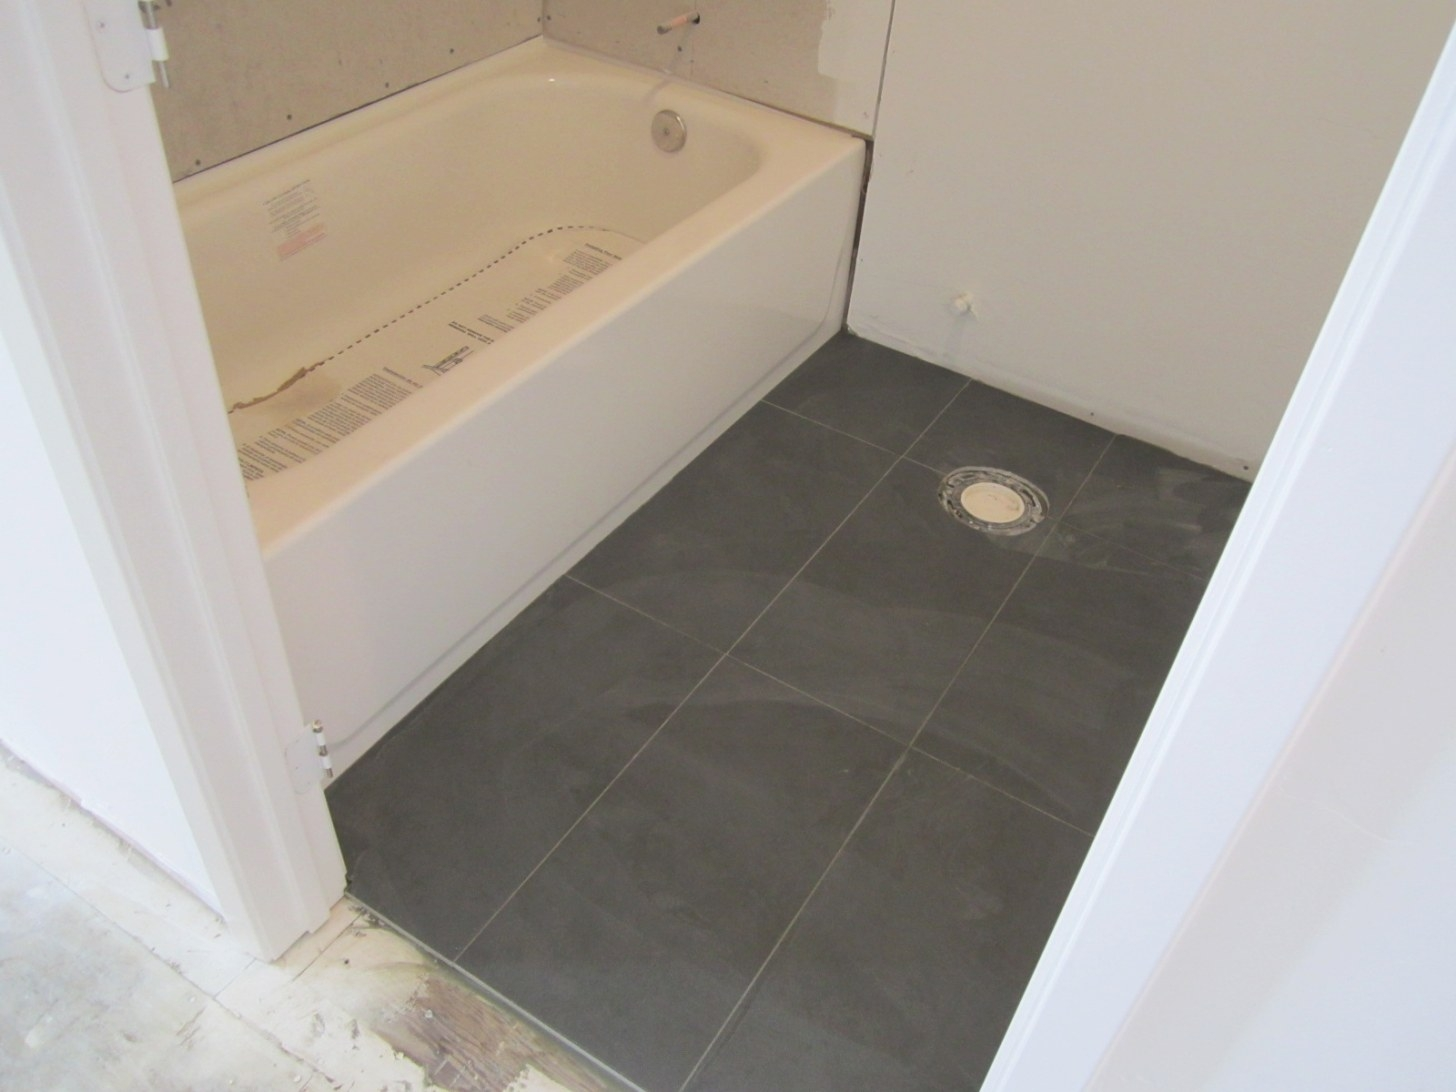 Tips: Alluring 12X24 Tile Patterns Adds Warm Style And inside 12X24 Tile In Small Bathroom